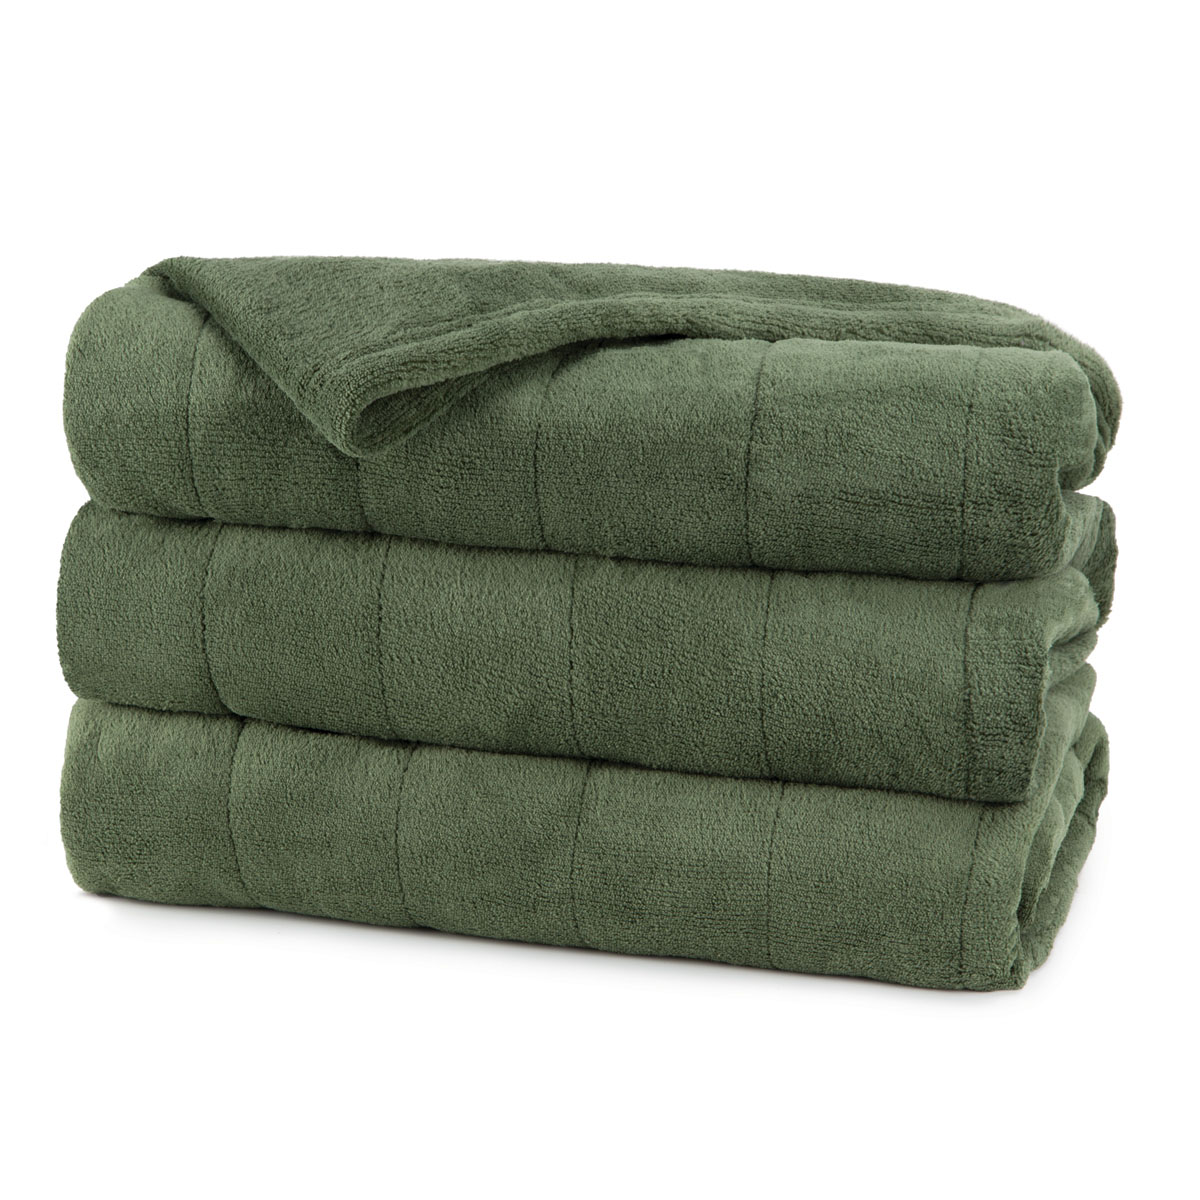 Sunbeam-Microplush-Heated-Blanket-BSM9S-CAD-MASTER